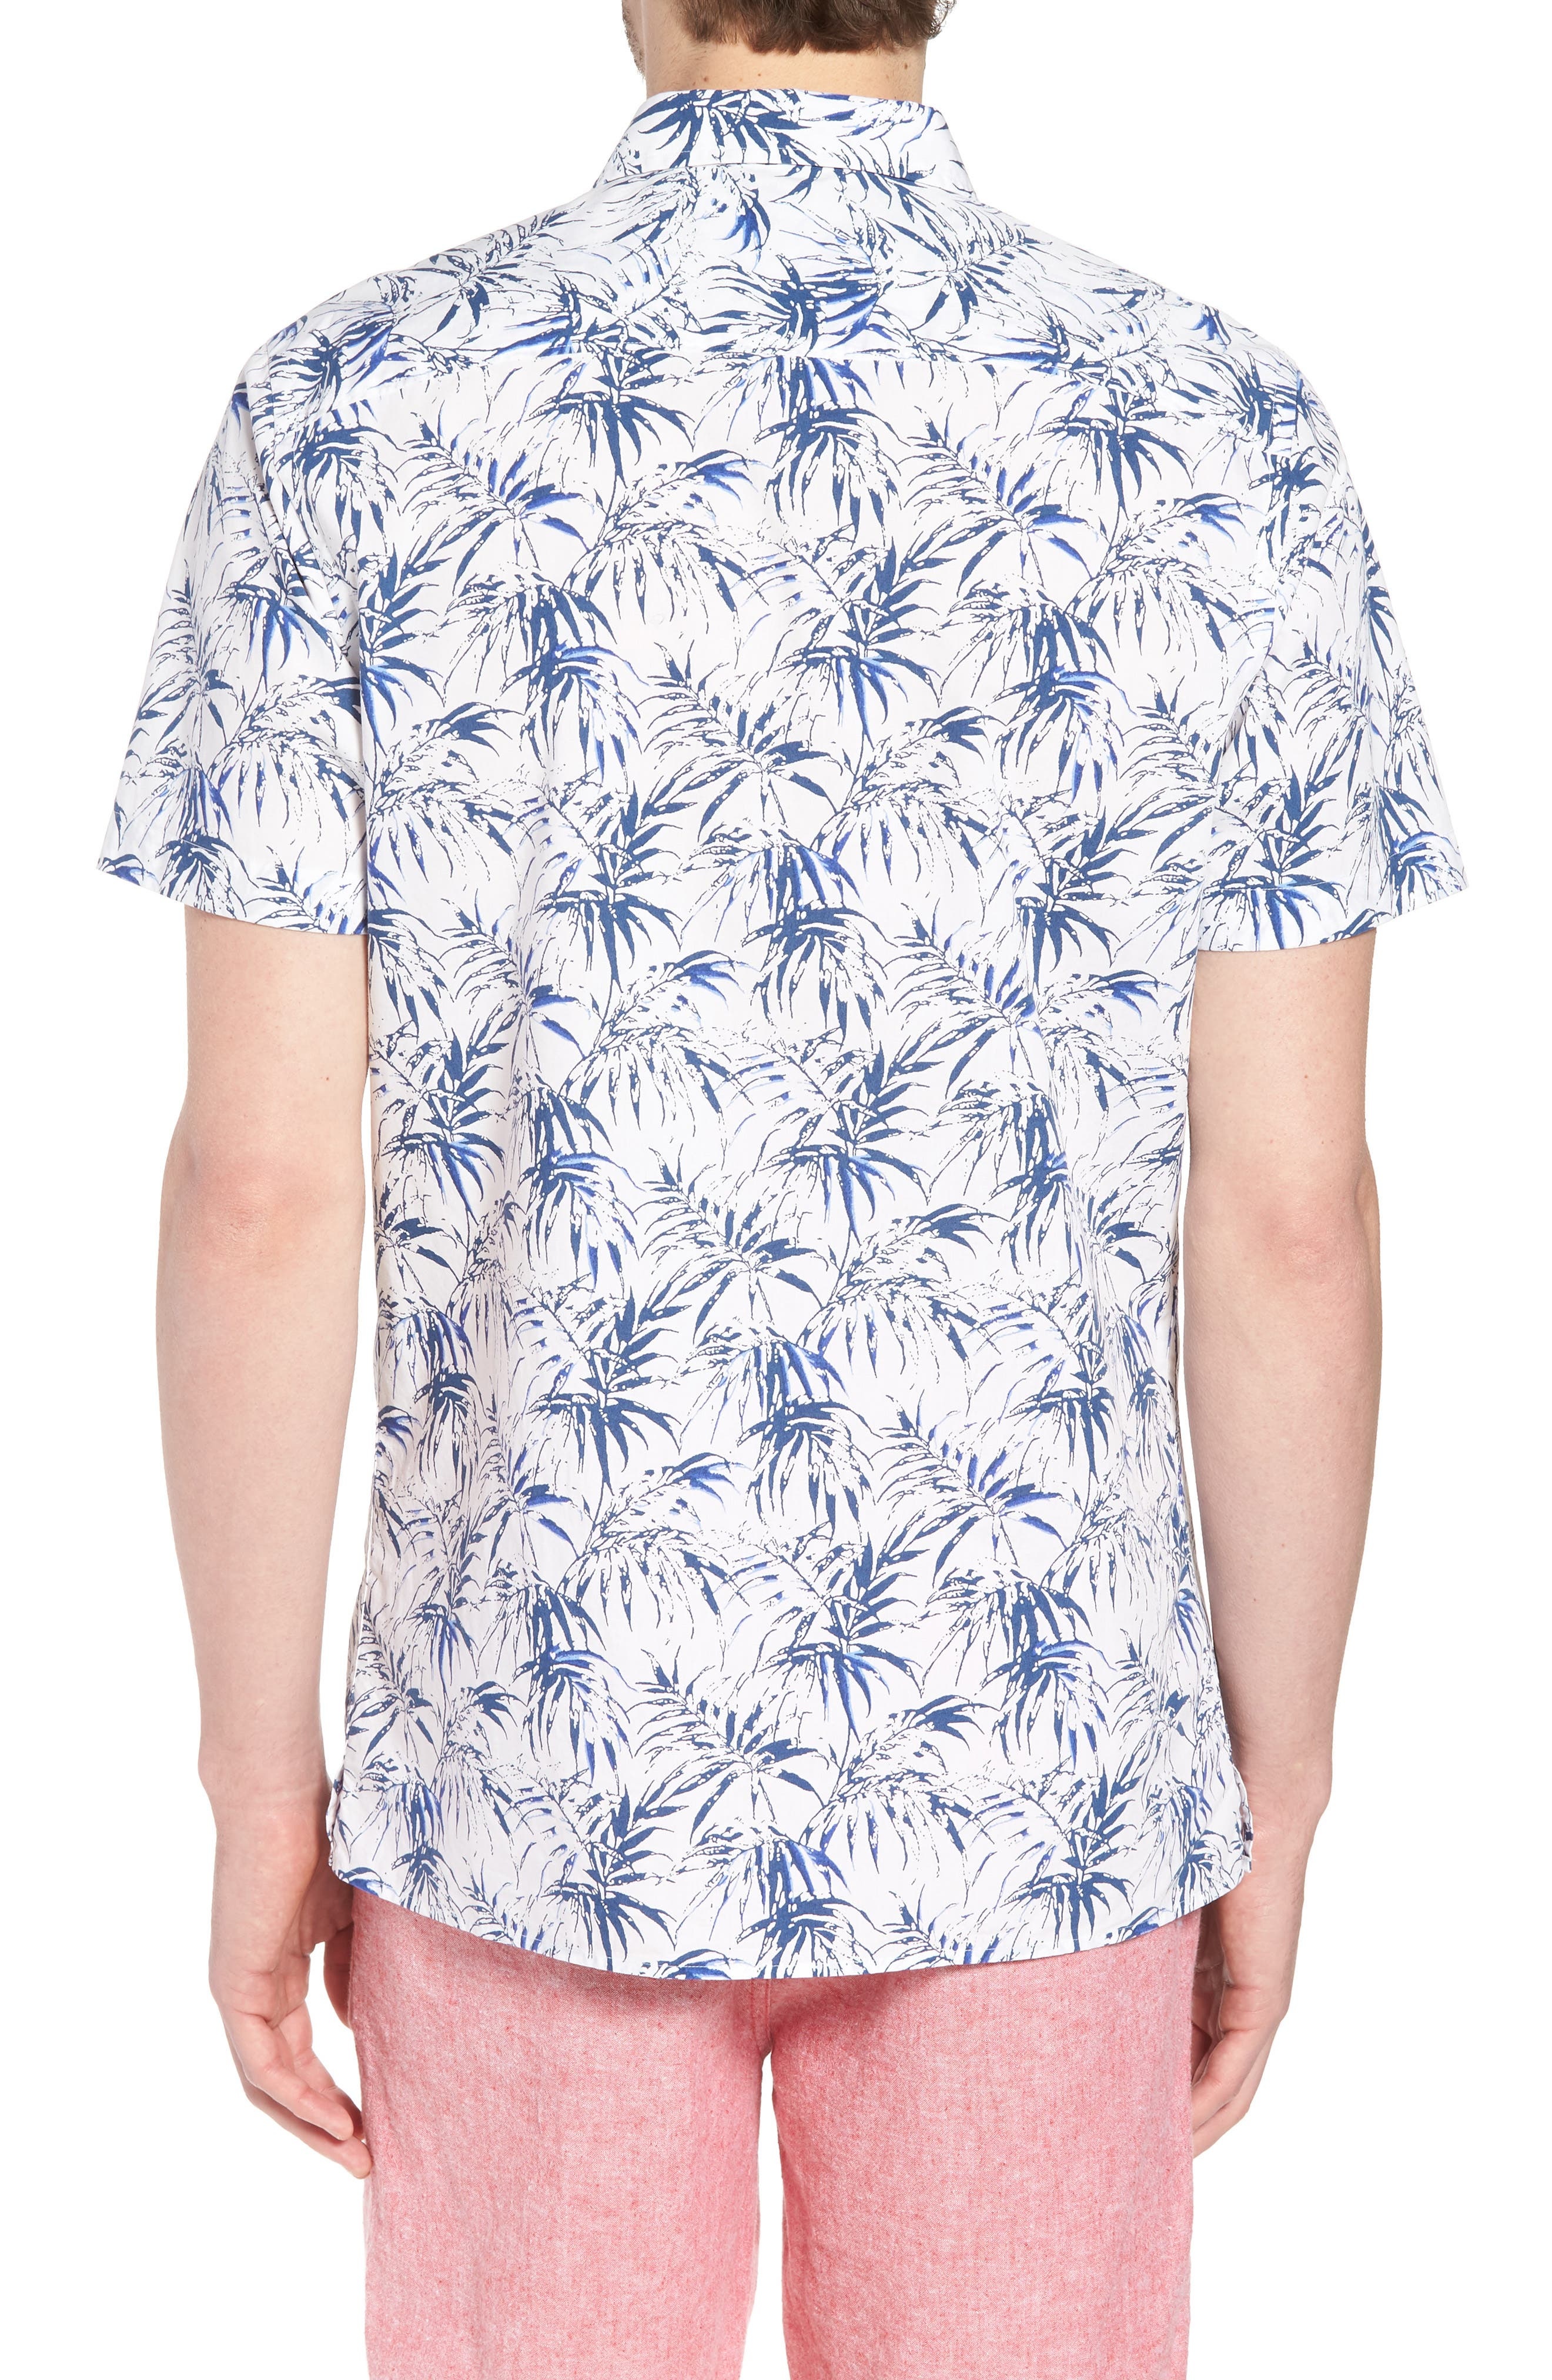 Trim Fit Palm Print Camp Shirt,                             Alternate thumbnail 3, color,                             White Navy Stamped Palms